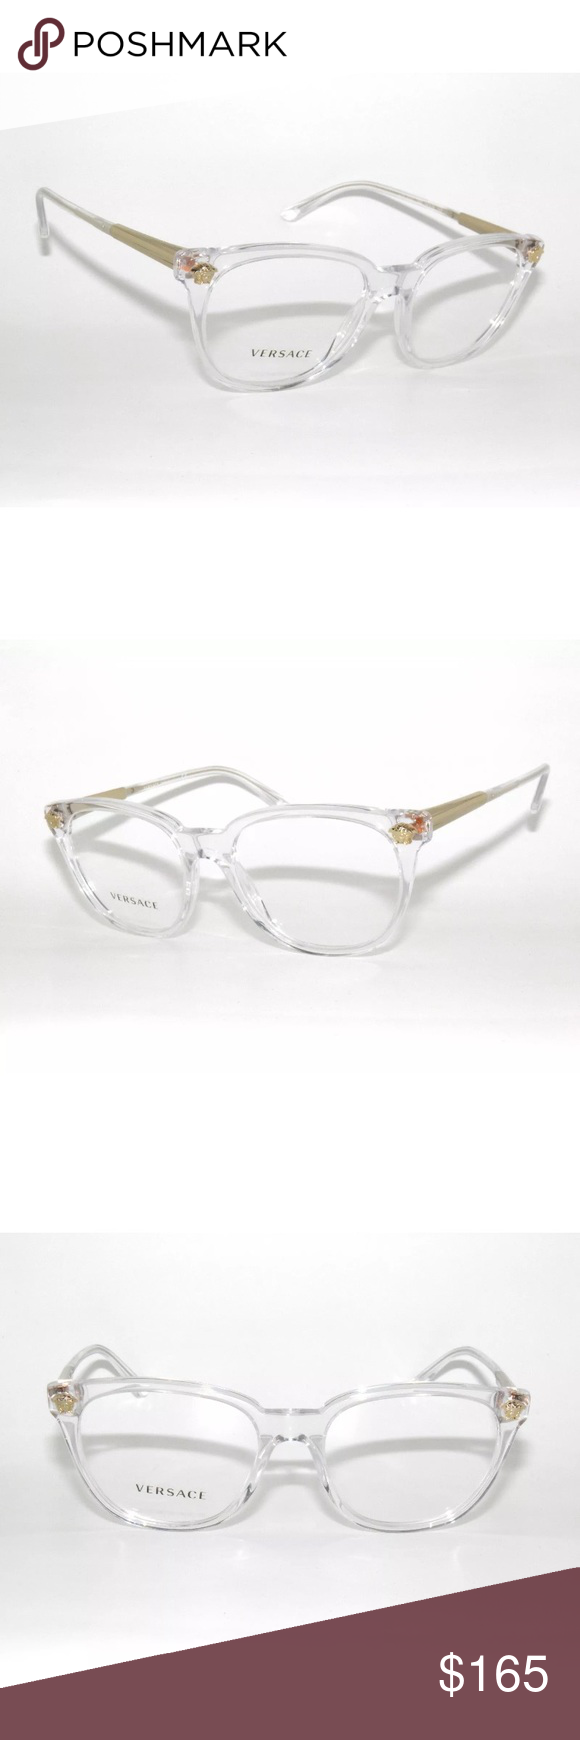 572be6708a6 Versace transparent Eyeglasses 3242 Brand new Comes with Versace case. Authentic  Versace Accessories Glasses